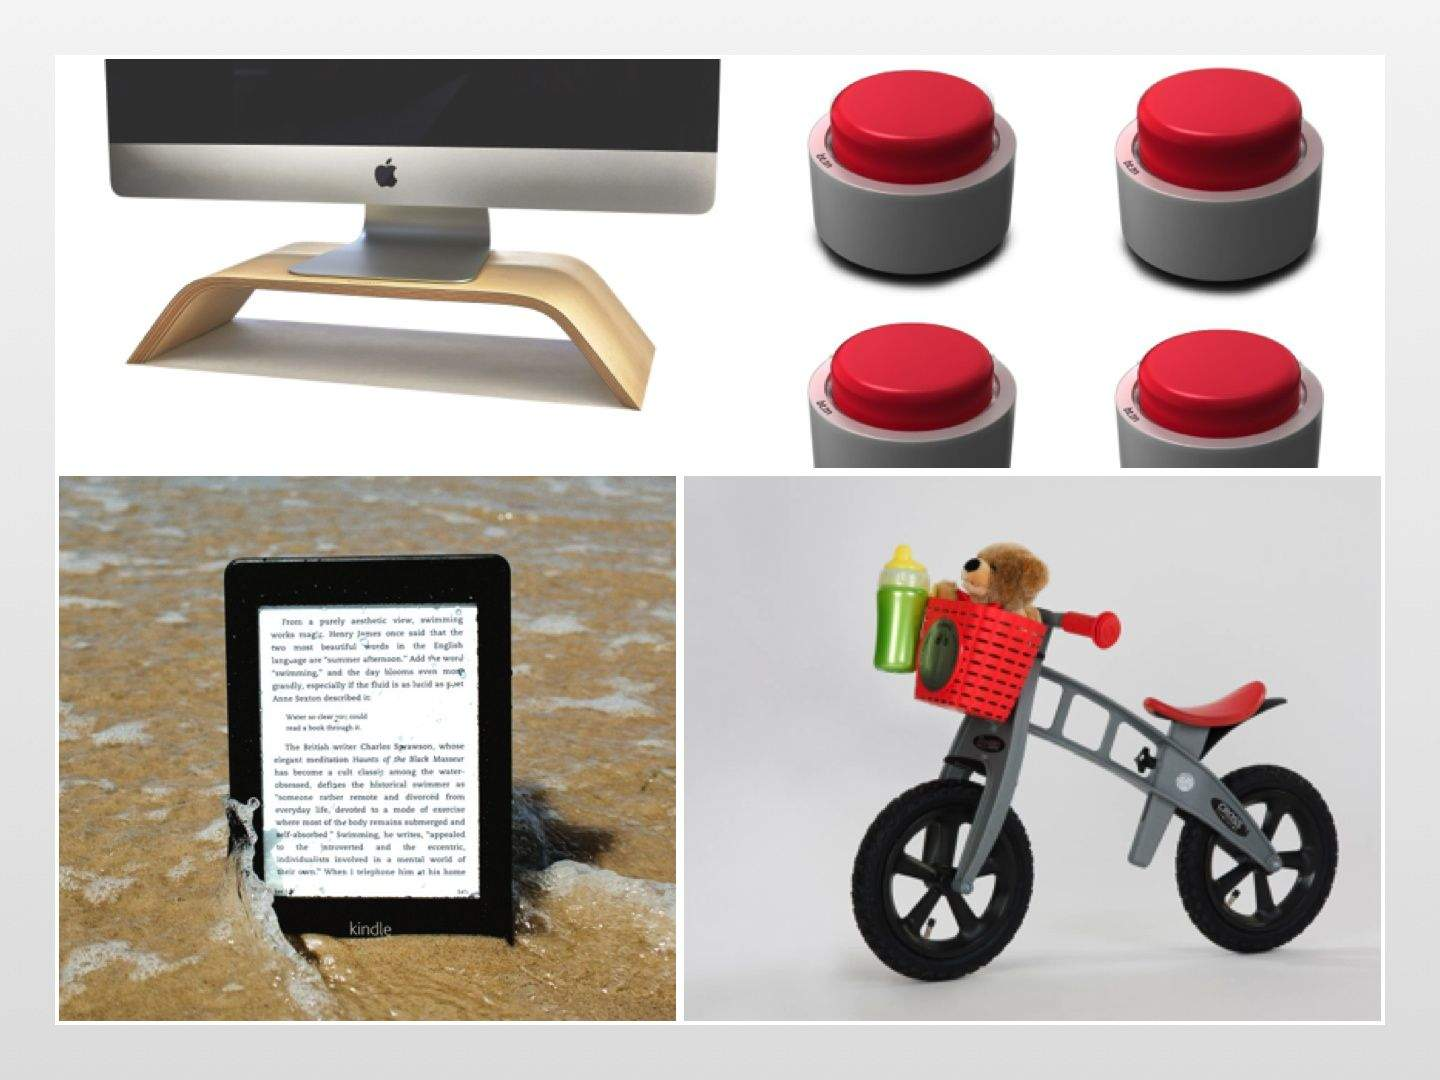 From waterproof e-readers and old-school (sort of) newspapers to stylish Mac stands and remarkably big buttons, here's what's new on the gadget front this week.